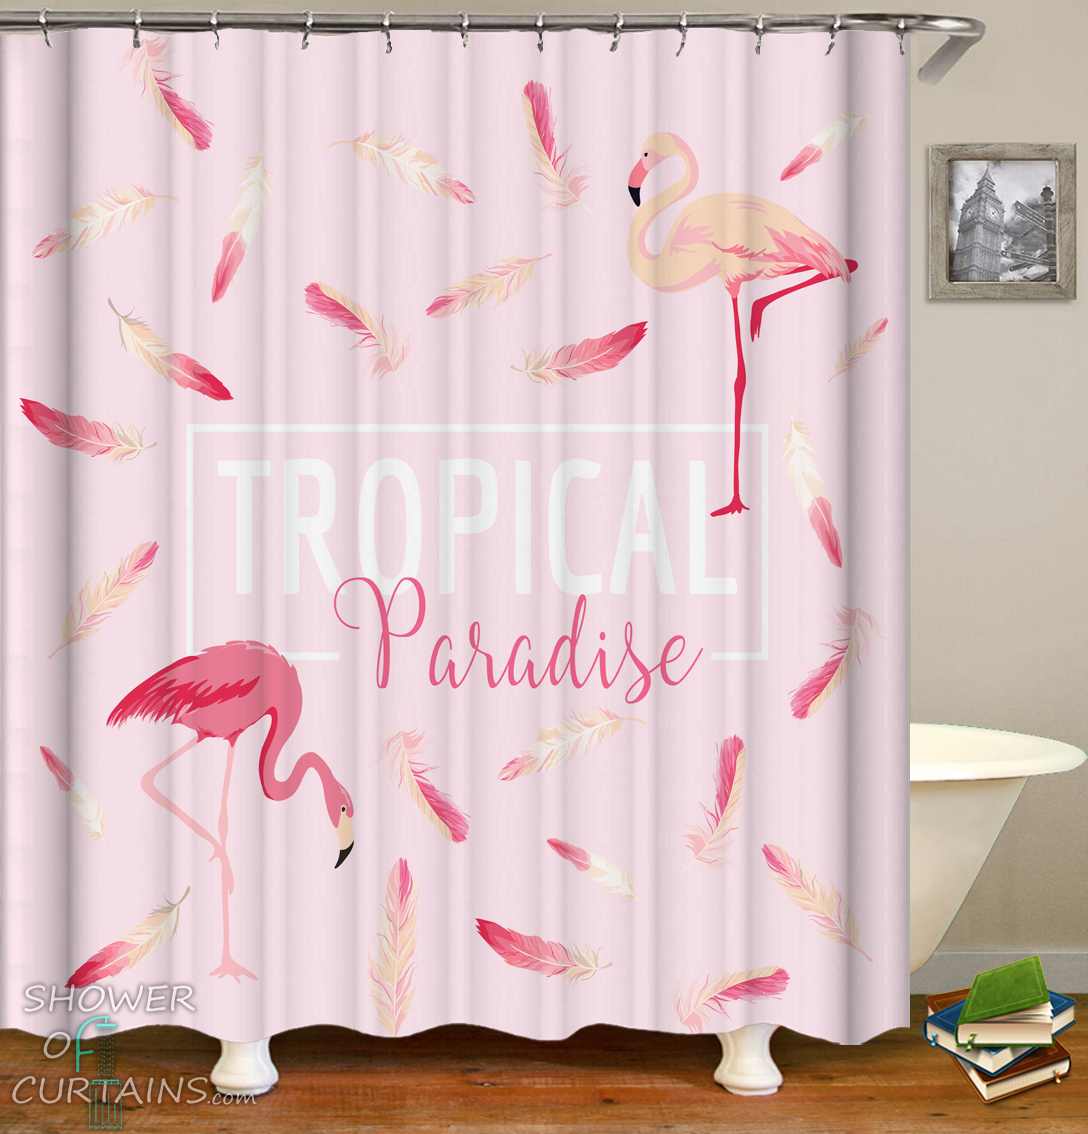 Buy Shower Curtains Online Pink Tropical Paradise Flamingo Shower Curtain Hxtc0590 From Shower Of Curtains